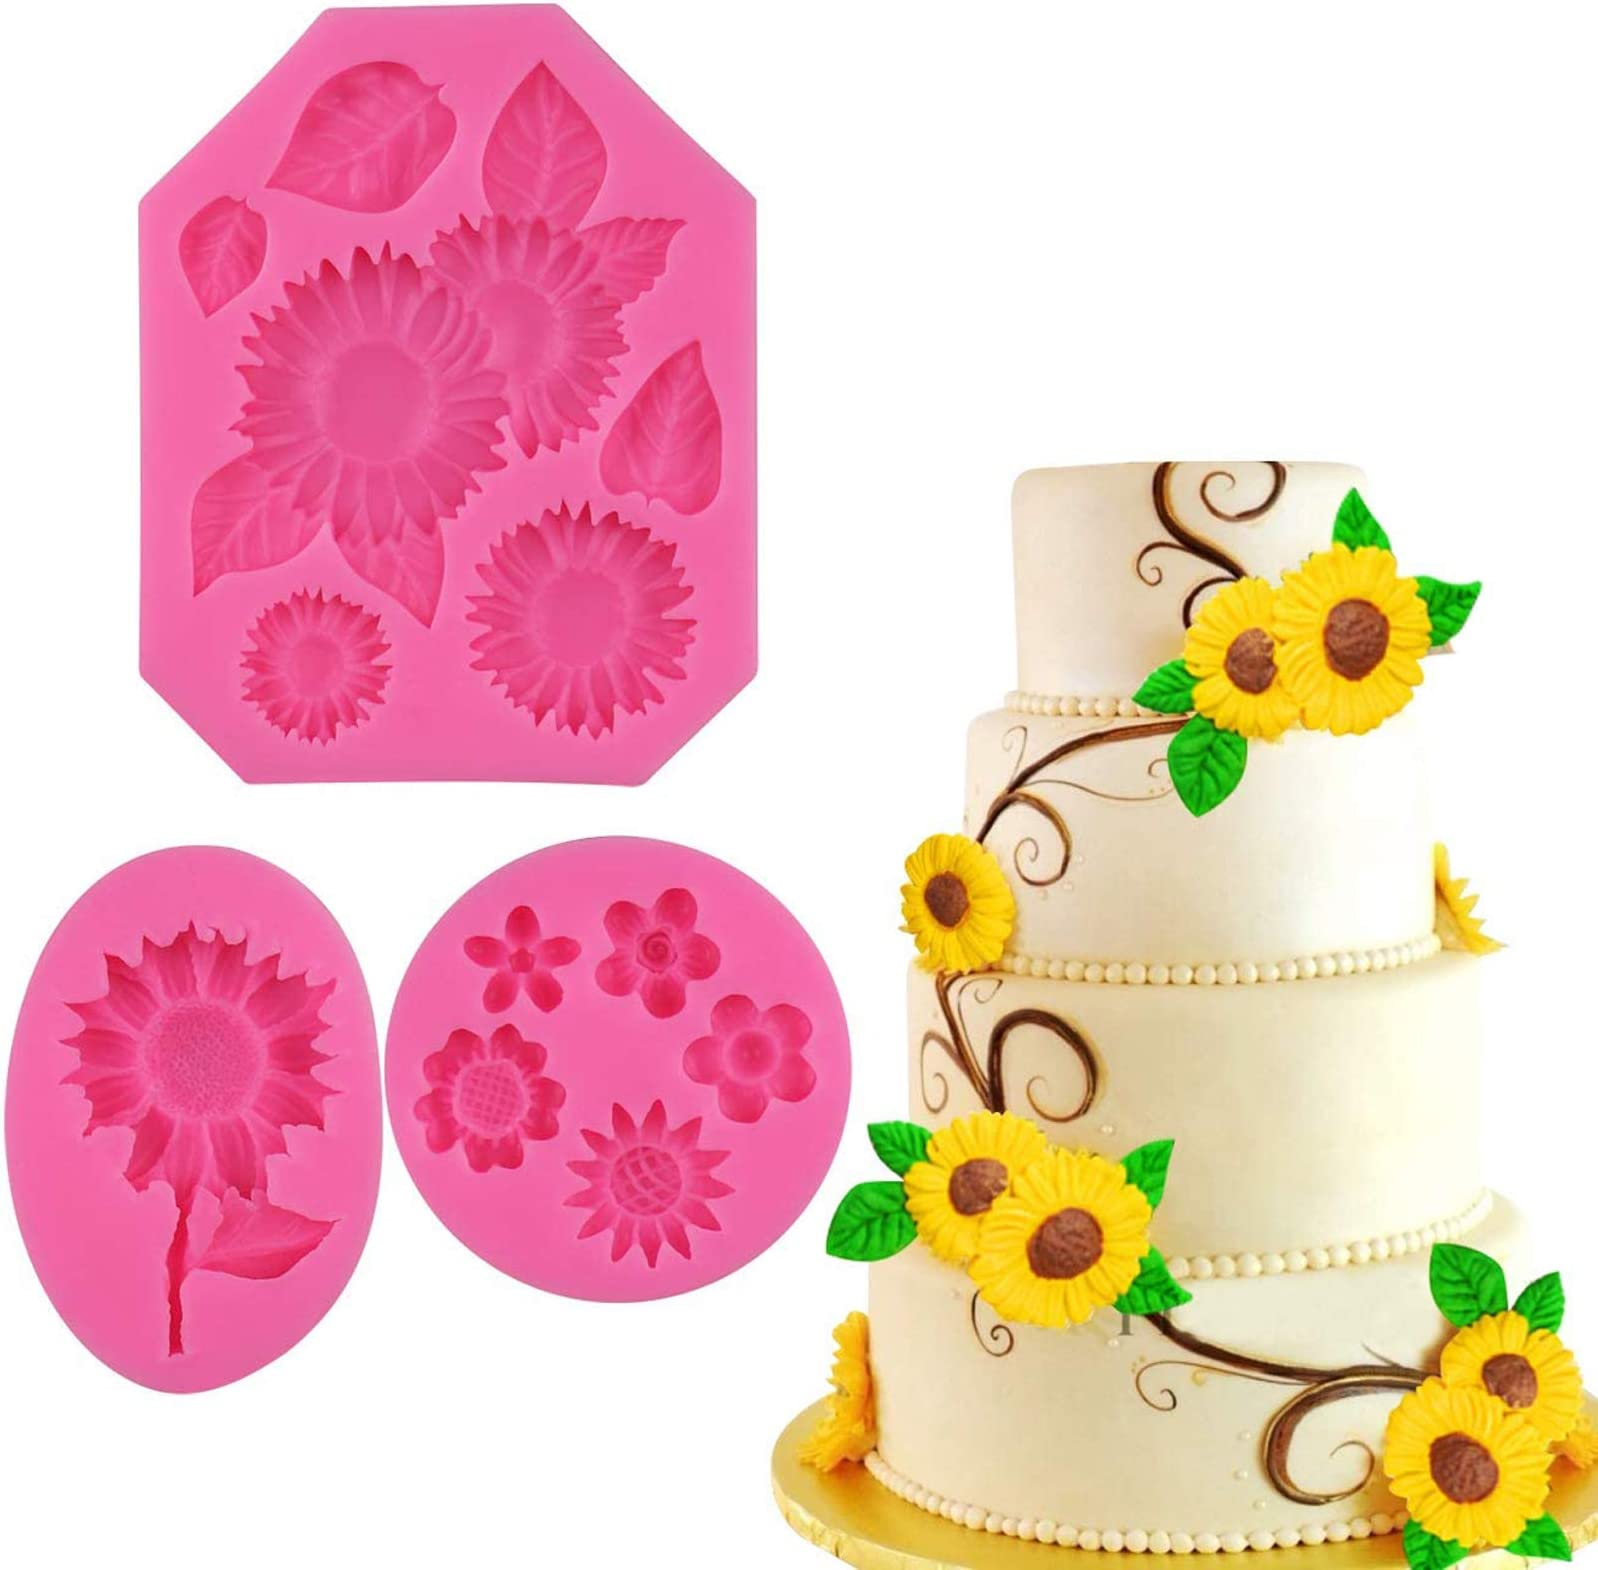 Flexible silicone mold for resin and clays Little flower mini mold 12 wide Fondant or gumpaste mold for mini cupcake topper M5224